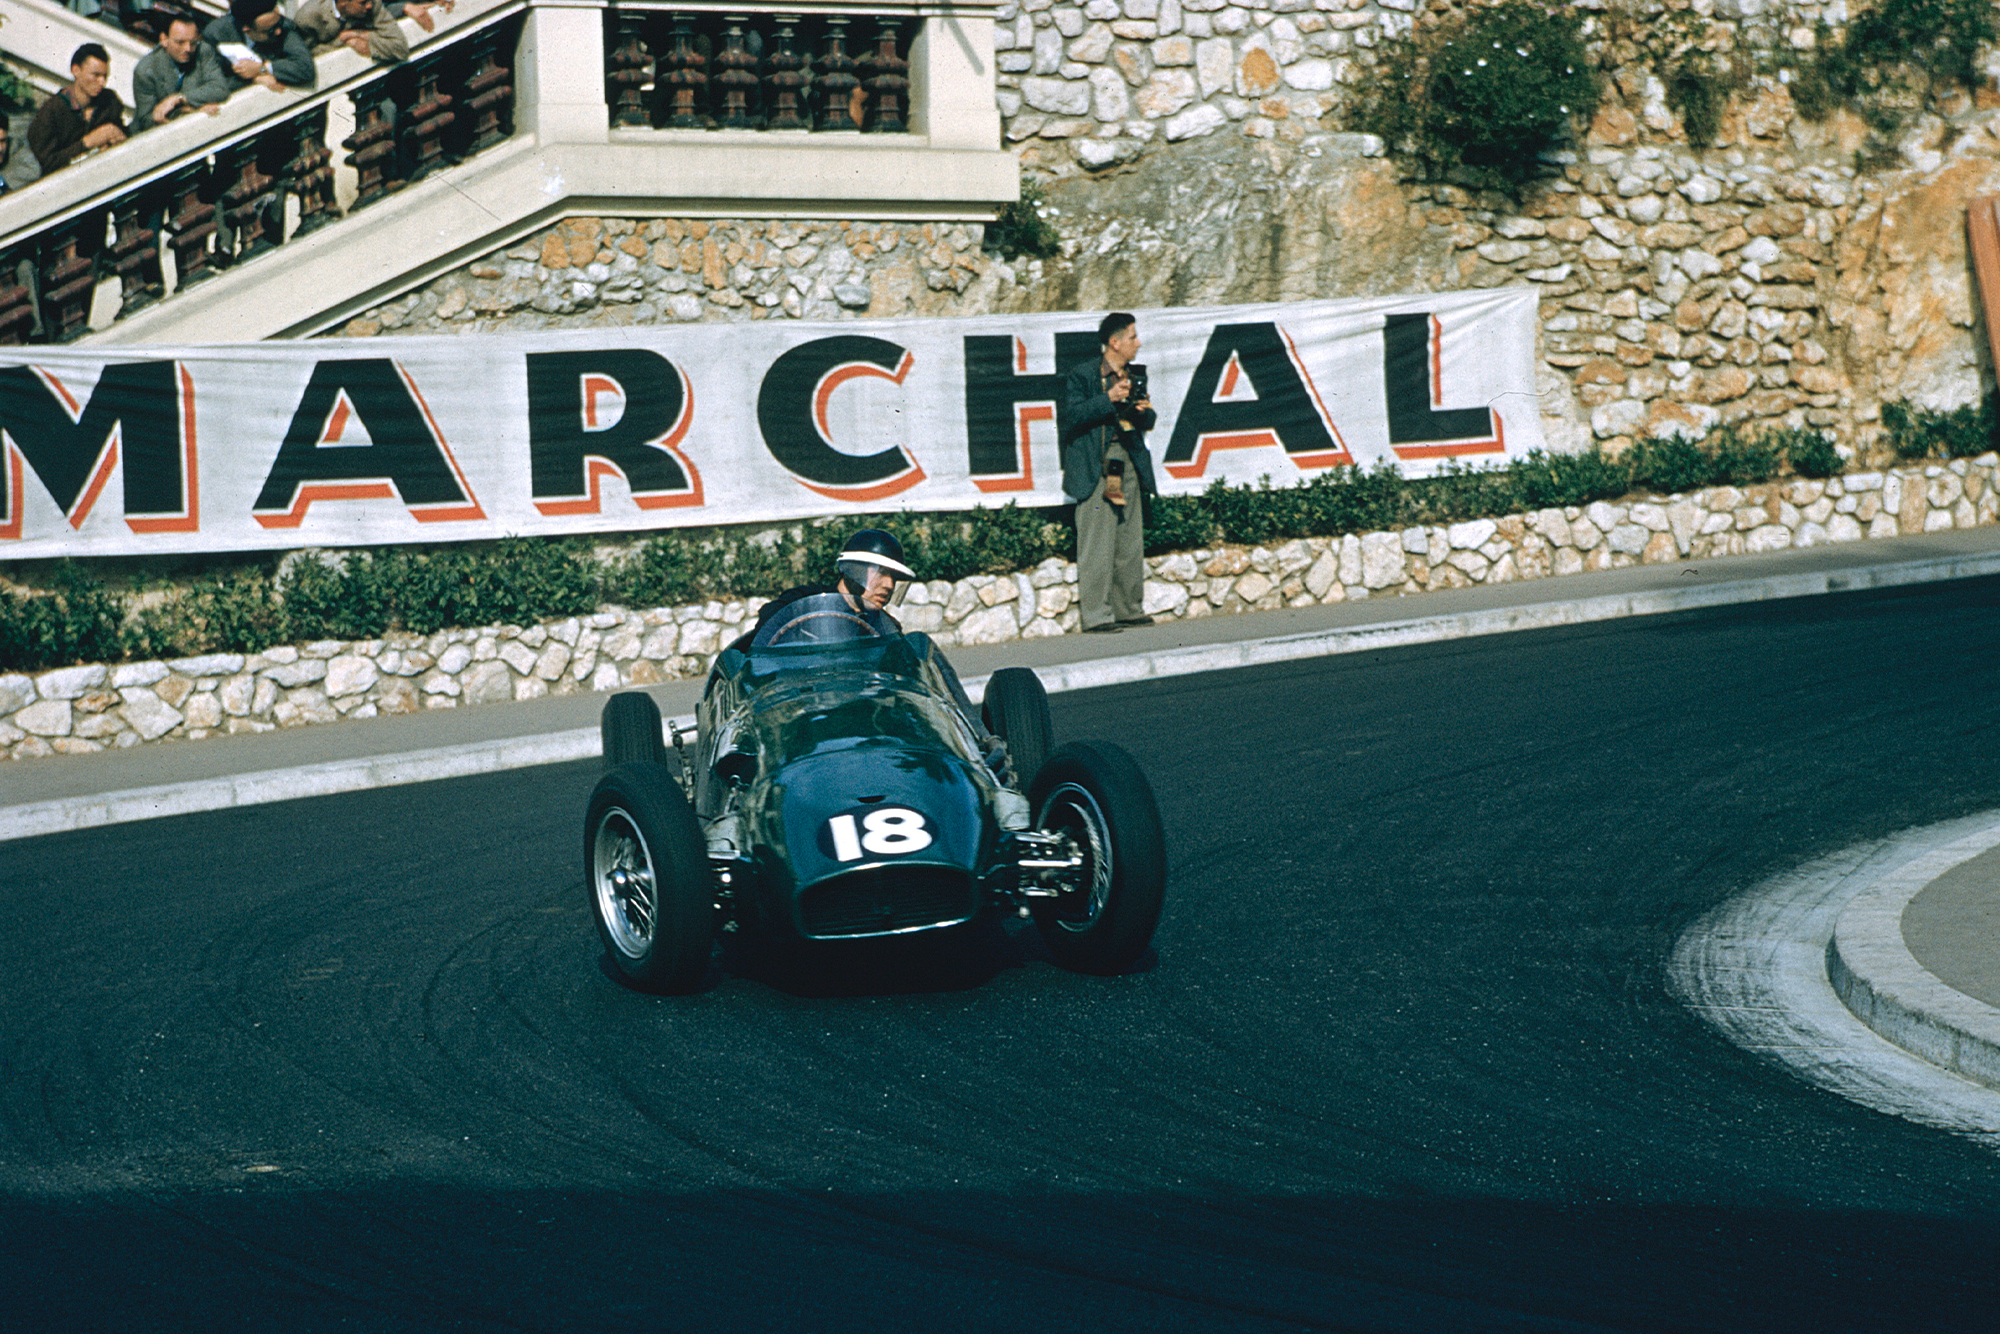 Mike Hawthorn (Vanwall VW1) at Station Hairpin, 1955 Monaco Grand Prix.